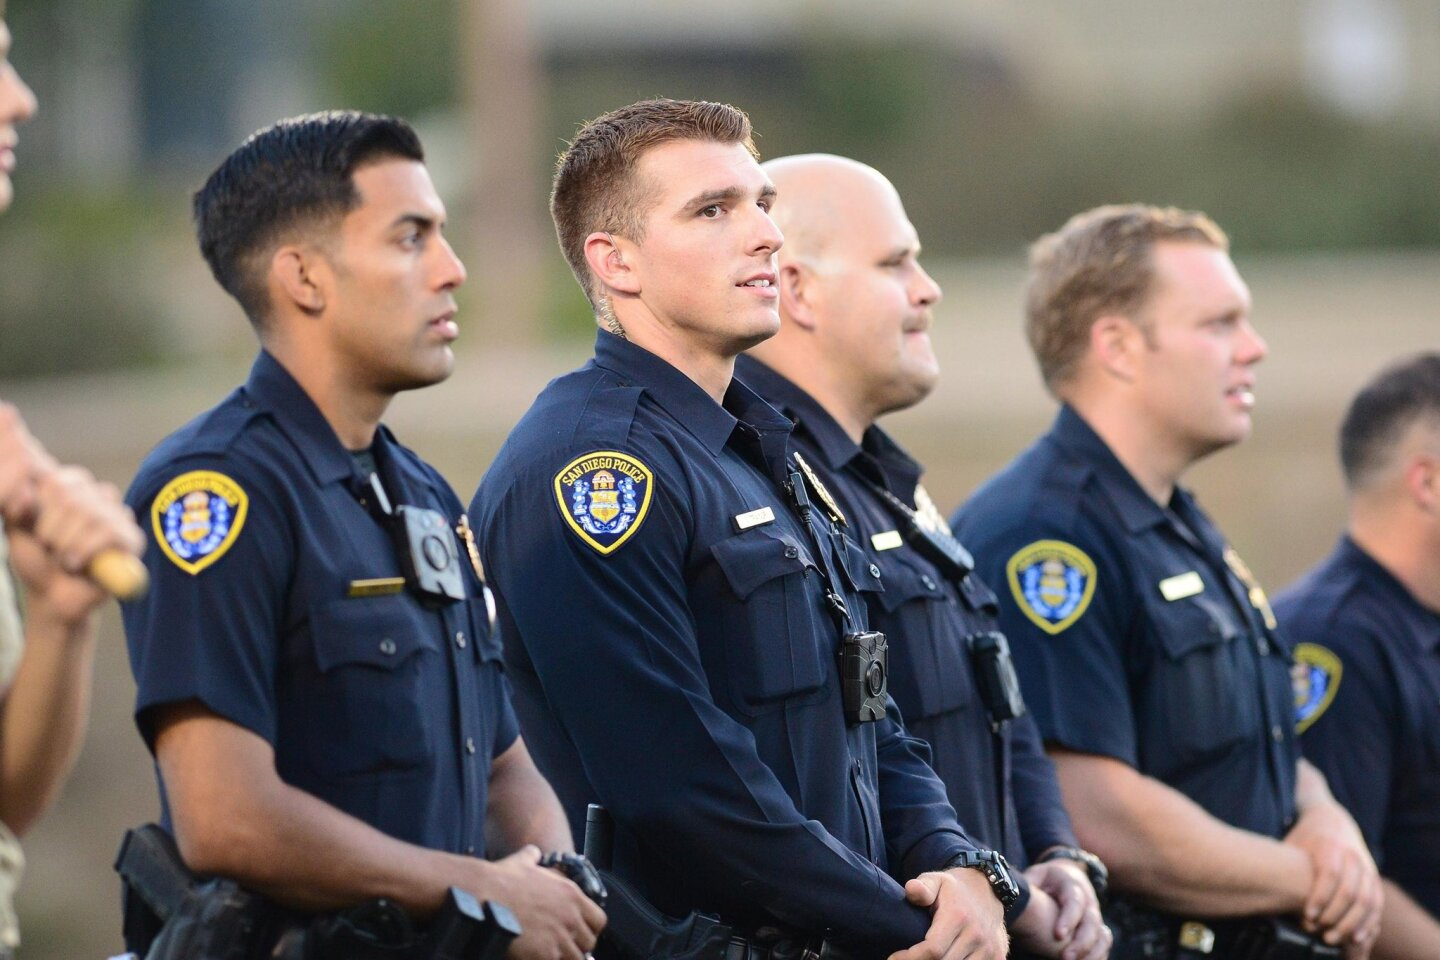 TPHS honored local San Diego Police Department officers.